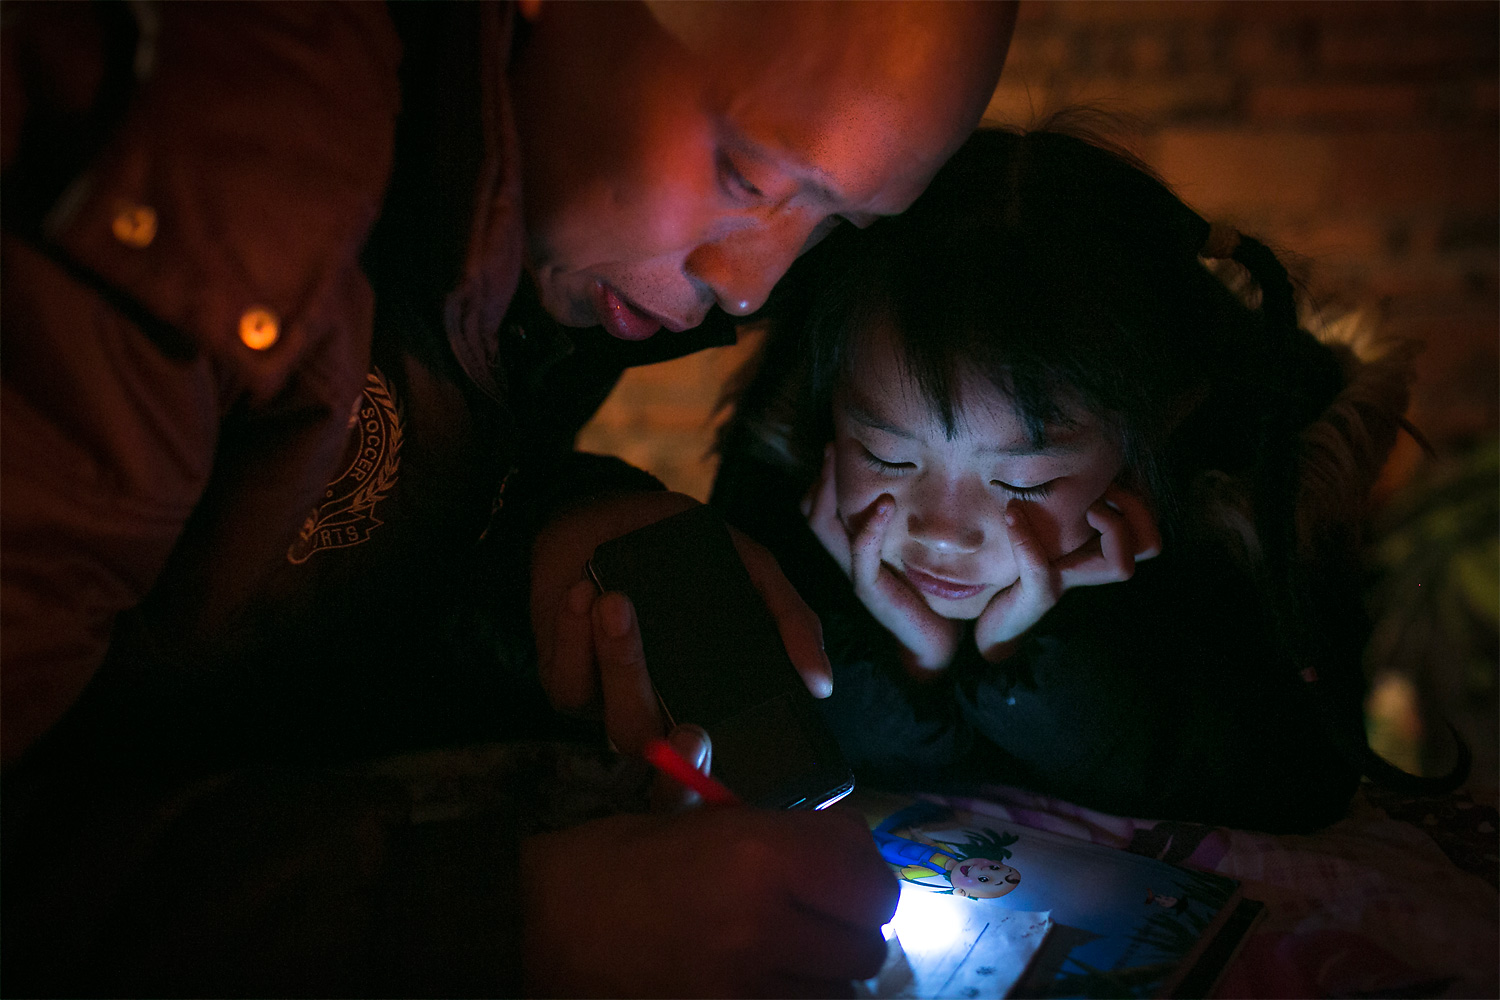 Unable to afford to send his daughters to school, Li Mingjin teaches Siyao writing at night by the light of his cellphone, at home, in Longjing village.